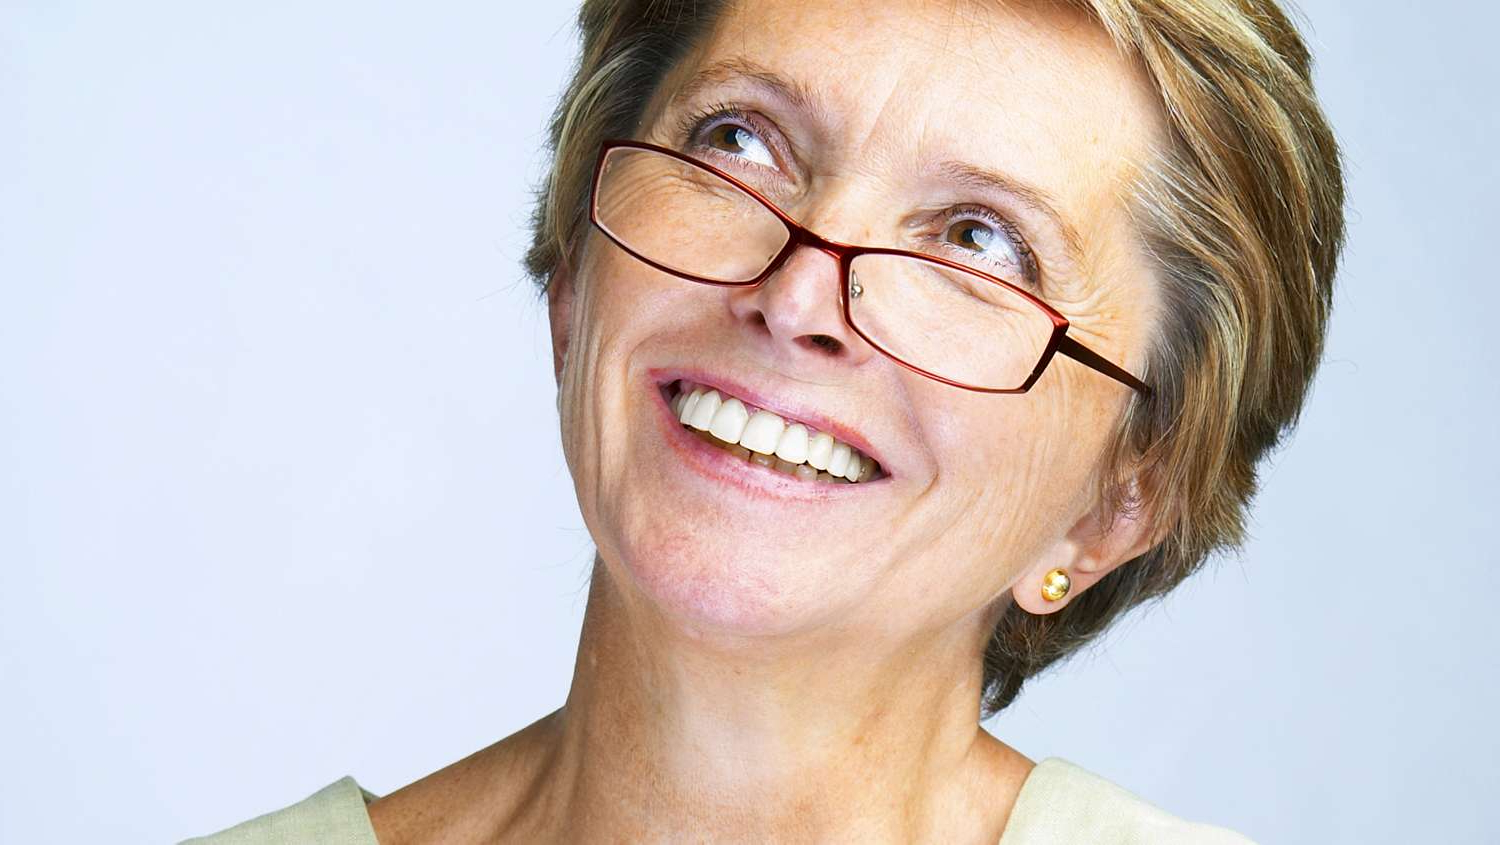 Learn About The Best Short Hairstyles For Women Over 60 With Glasses Intended For Short Haircuts For Women Who Wear Glasses (View 9 of 25)